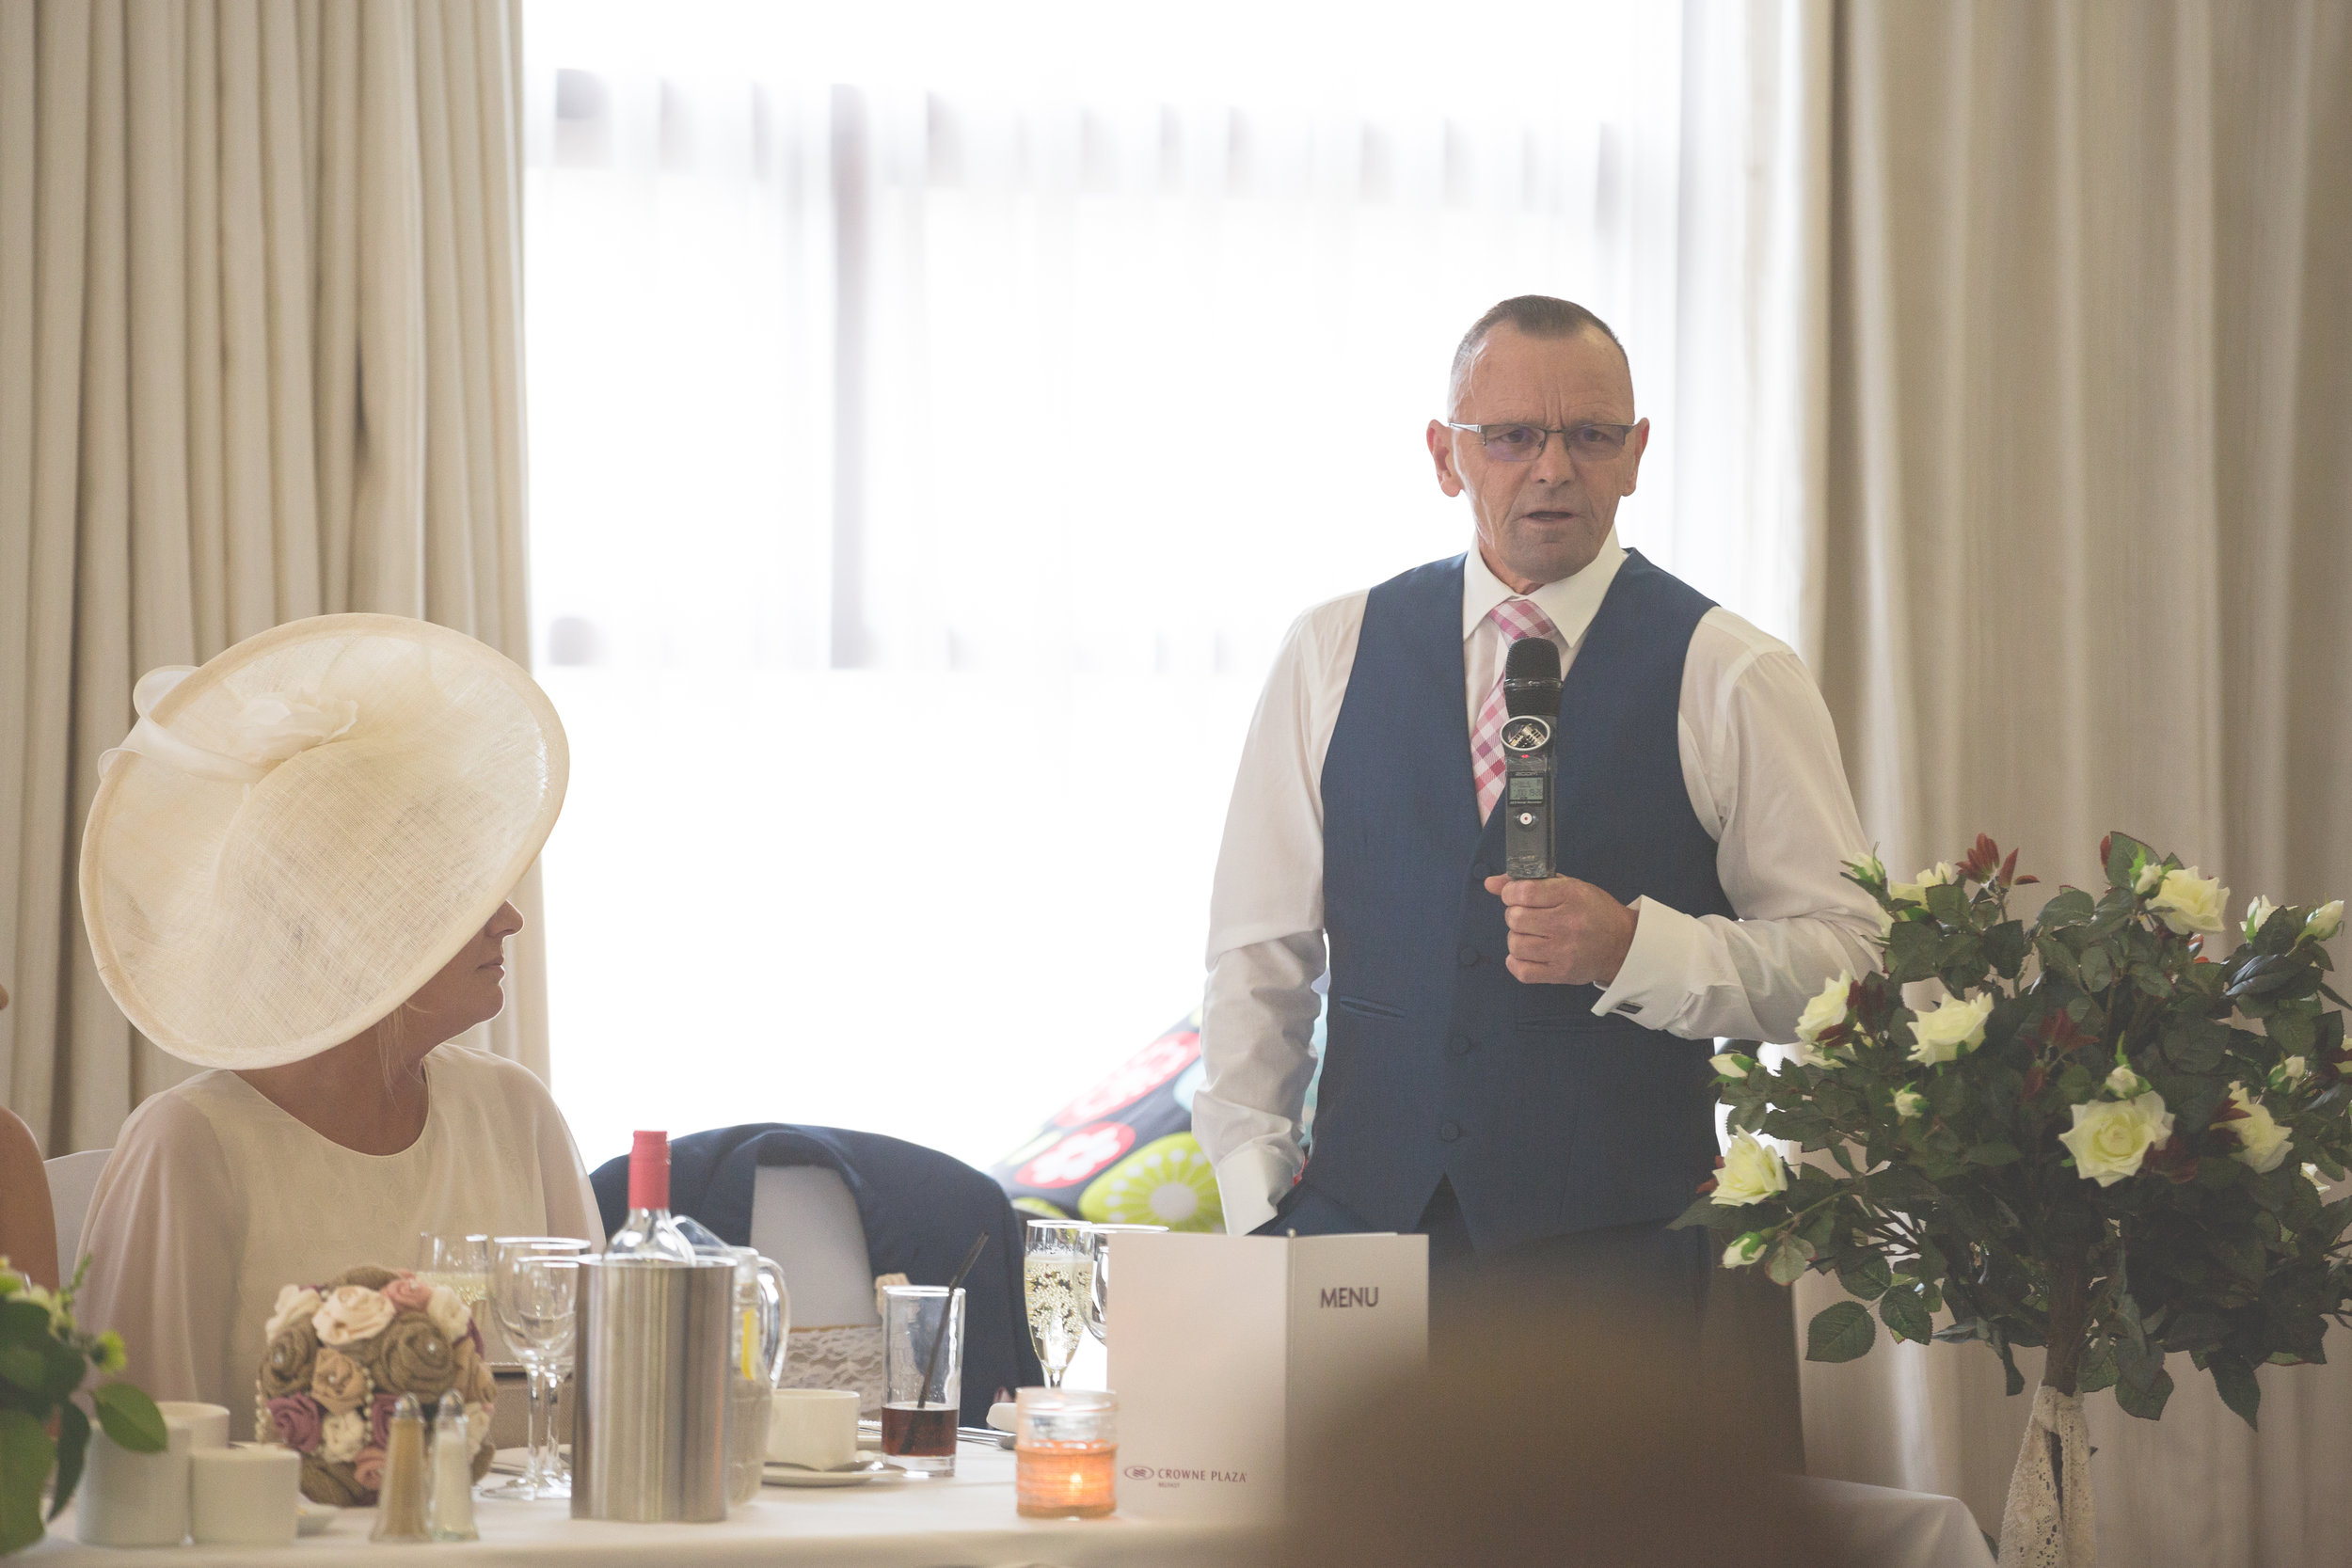 Antoinette & Stephen - Speeches | Brian McEwan Photography | Wedding Photographer Northern Ireland 21.jpg